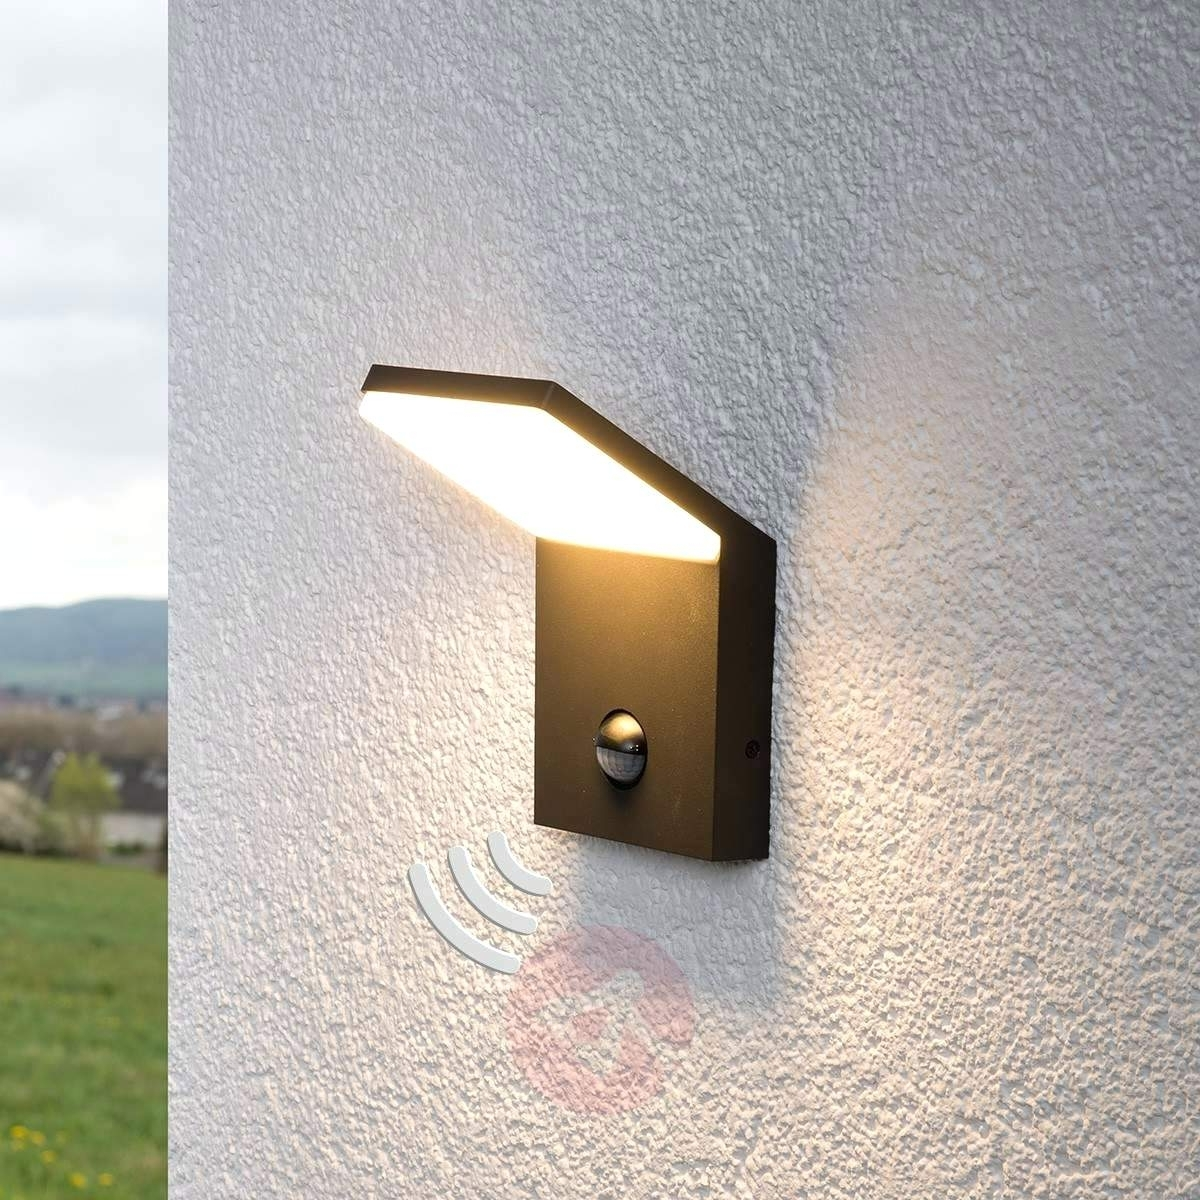 2019 Light : Best Wall Mounted Solar Lamp Pir Led Light With Outdoor With Regard To Outdoor Wall Led Lighting (View 2 of 20)